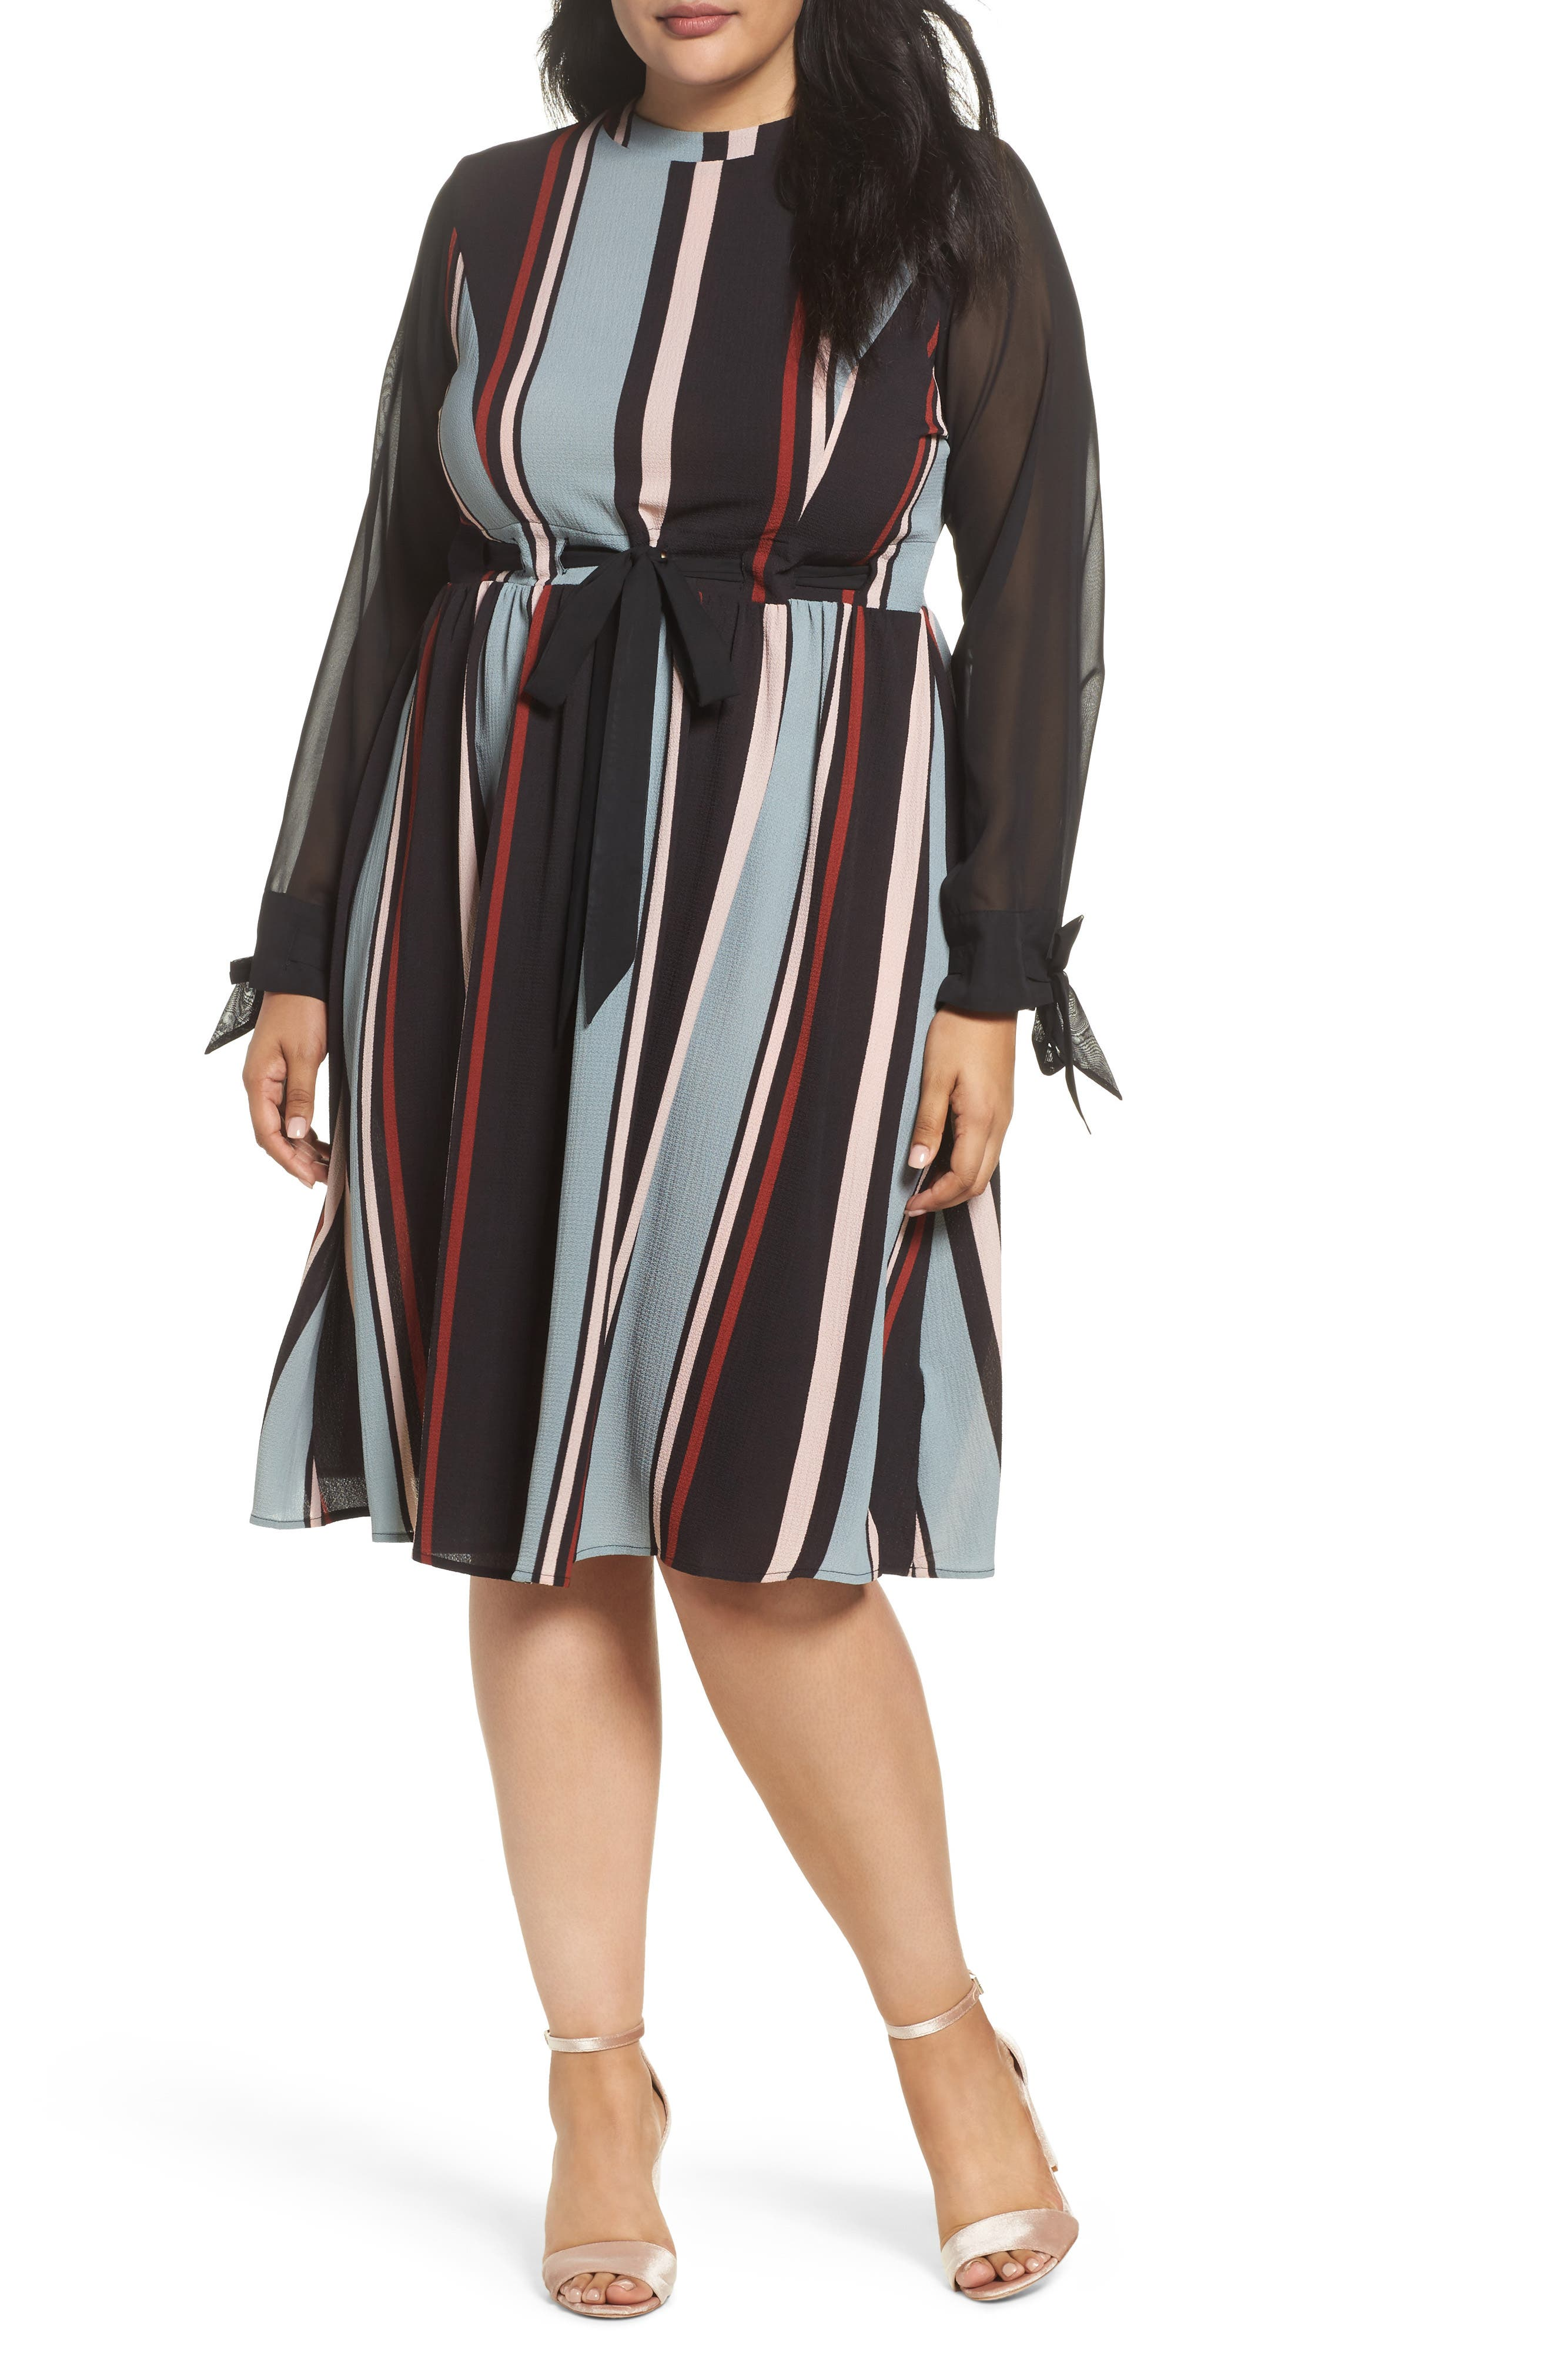 Alternate Image 1 Selected - LOST INK Stripe Fit & Flare Dress (Plus Size)